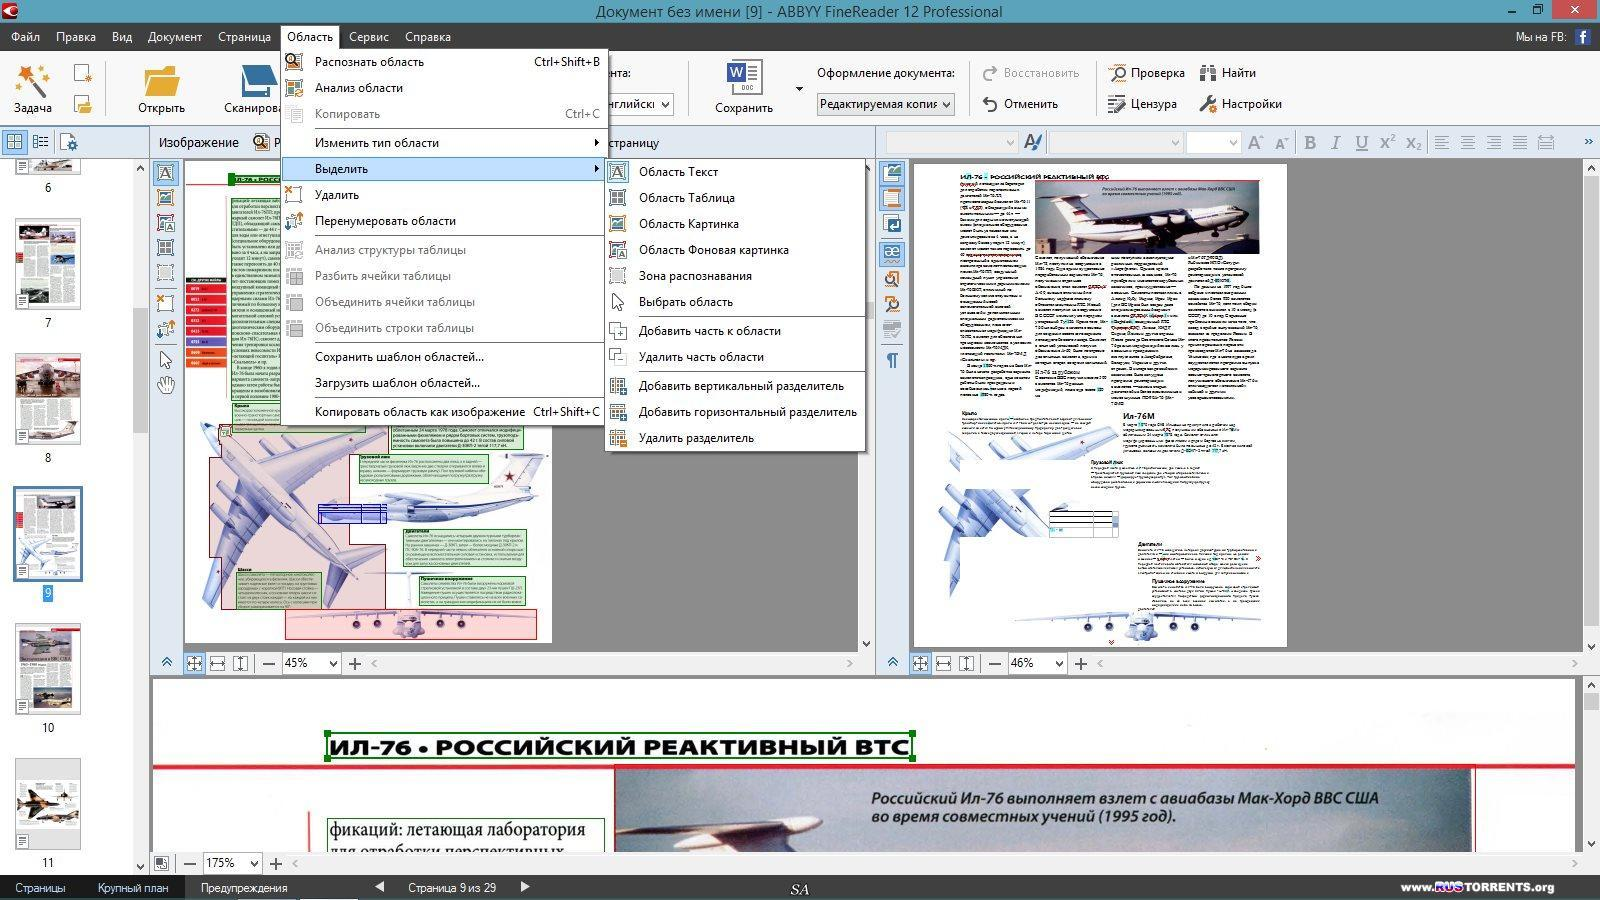 ABBYY FineReader 12.0.101.382 Professional Edition Repack + Portable by D!akov